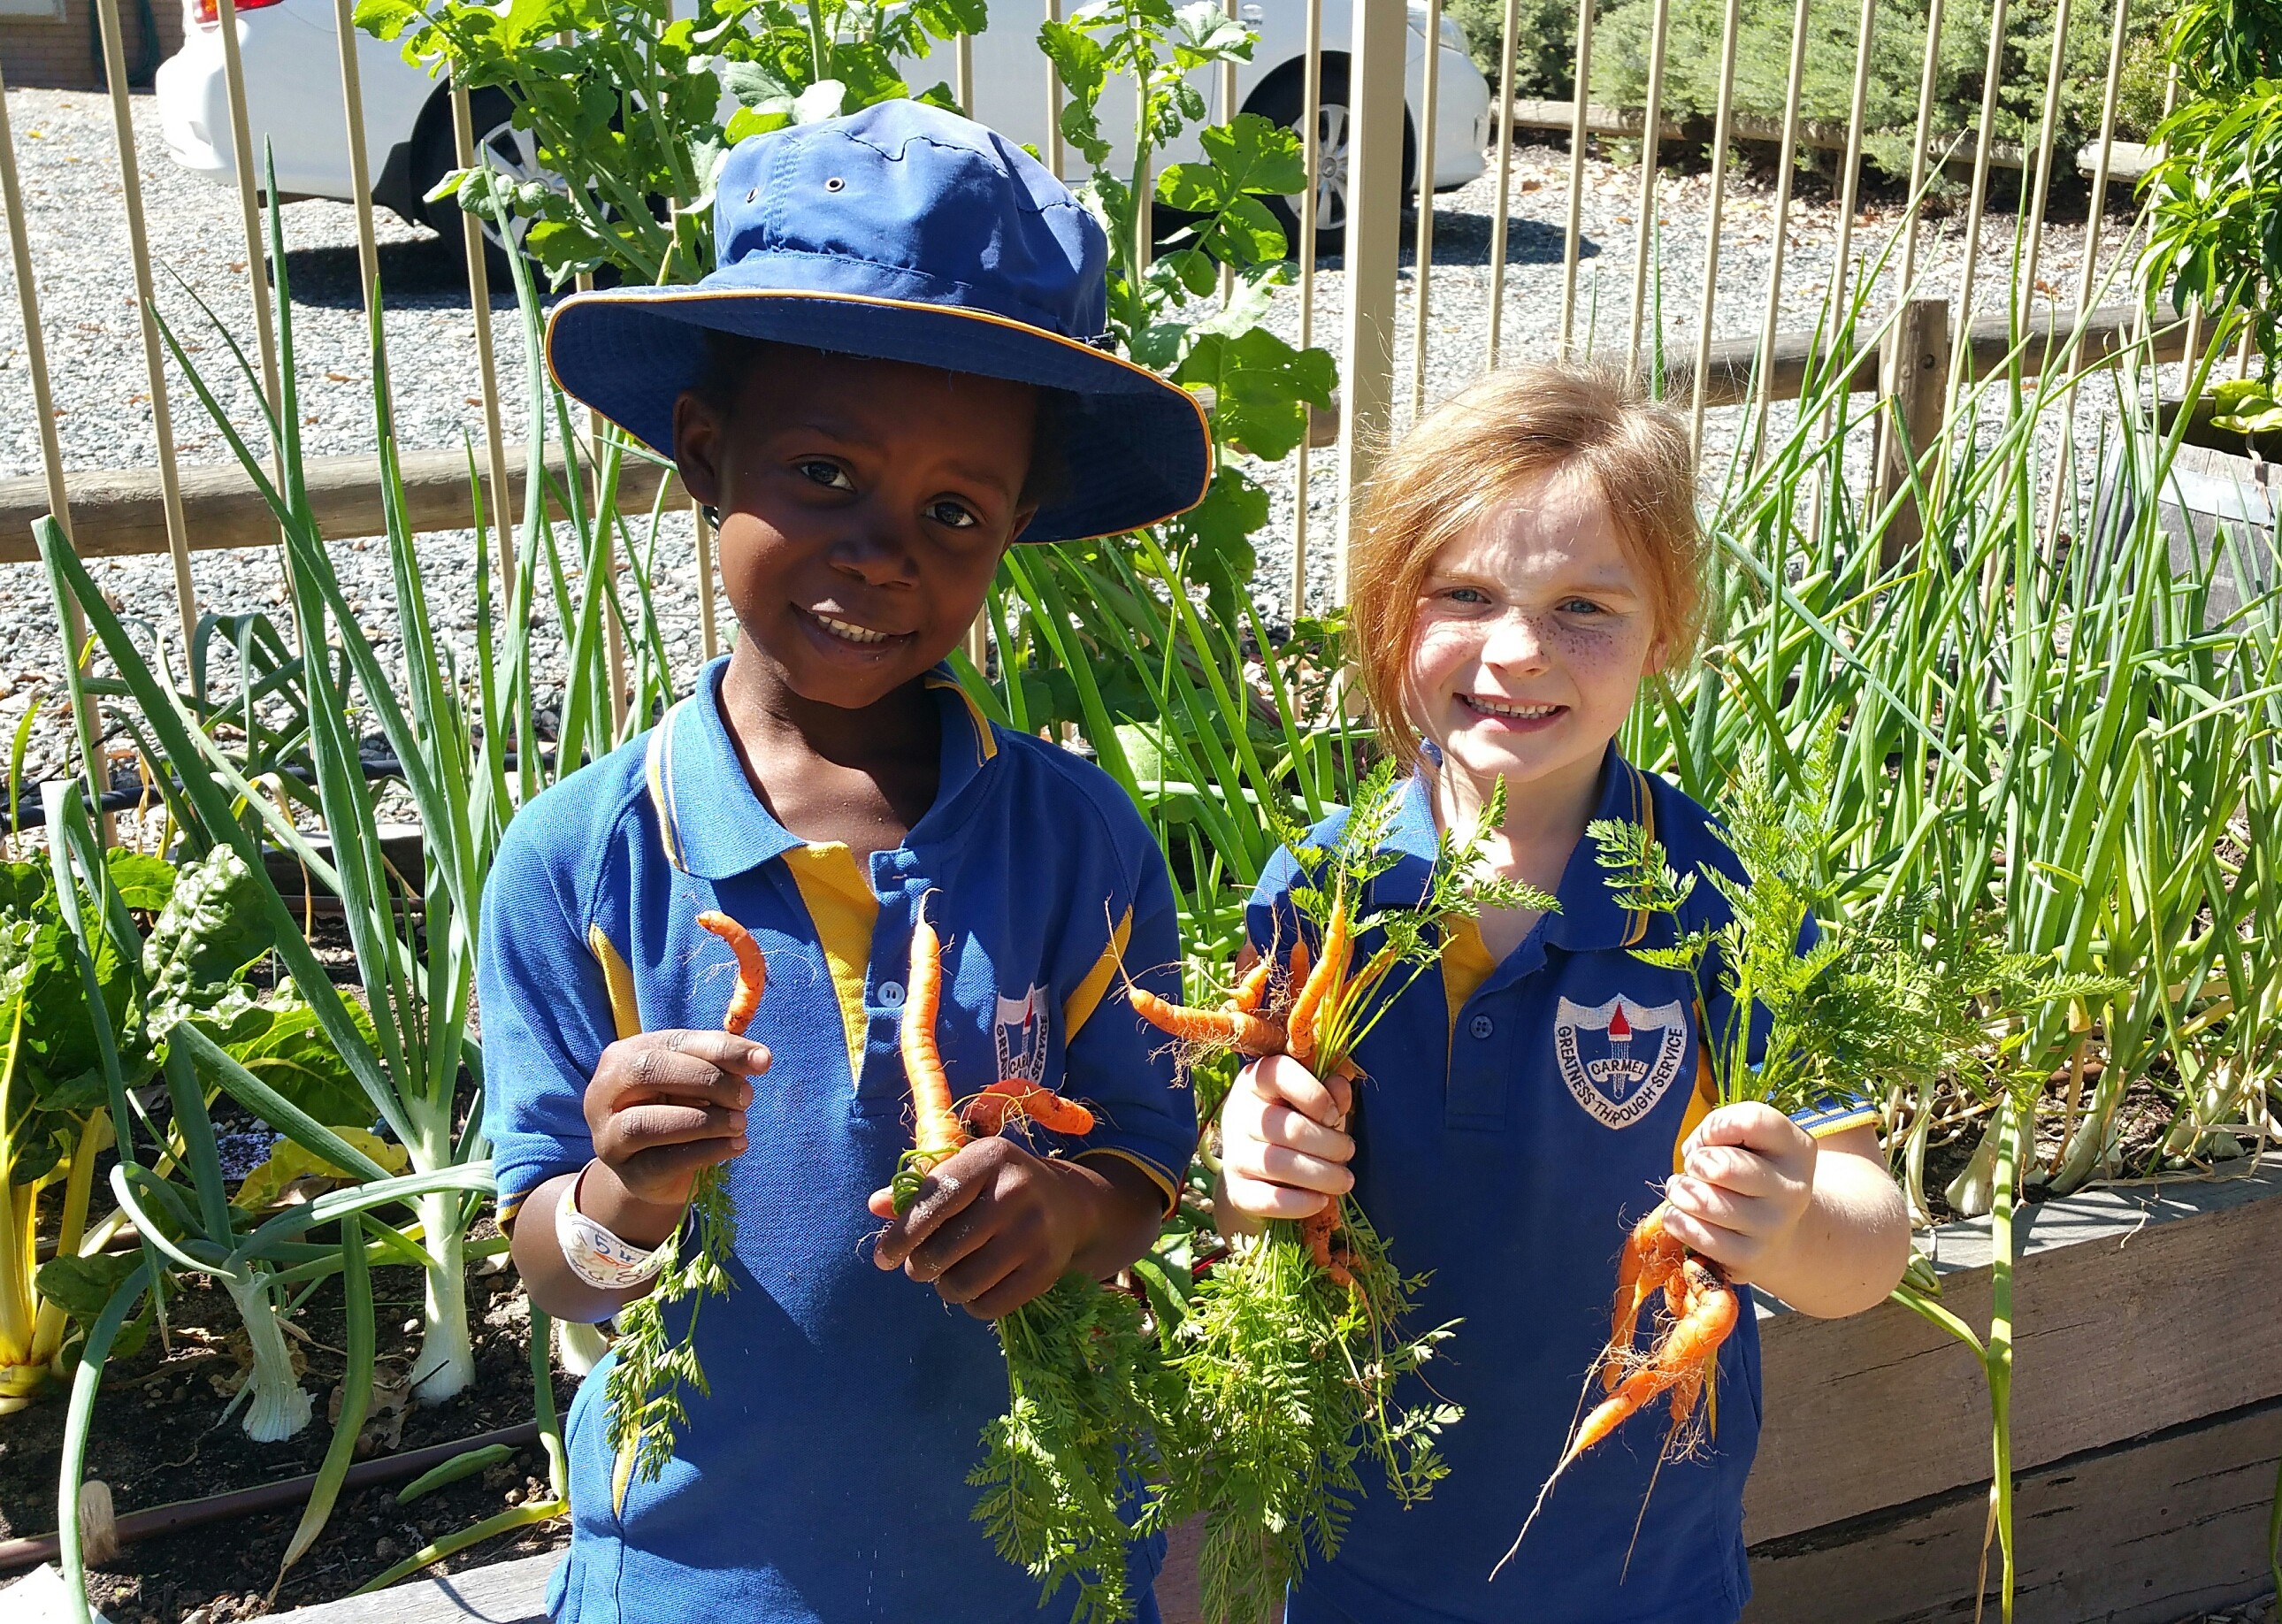 Stephanie Alexander Kitchen Garden Program Carmel Adventist College About Our School